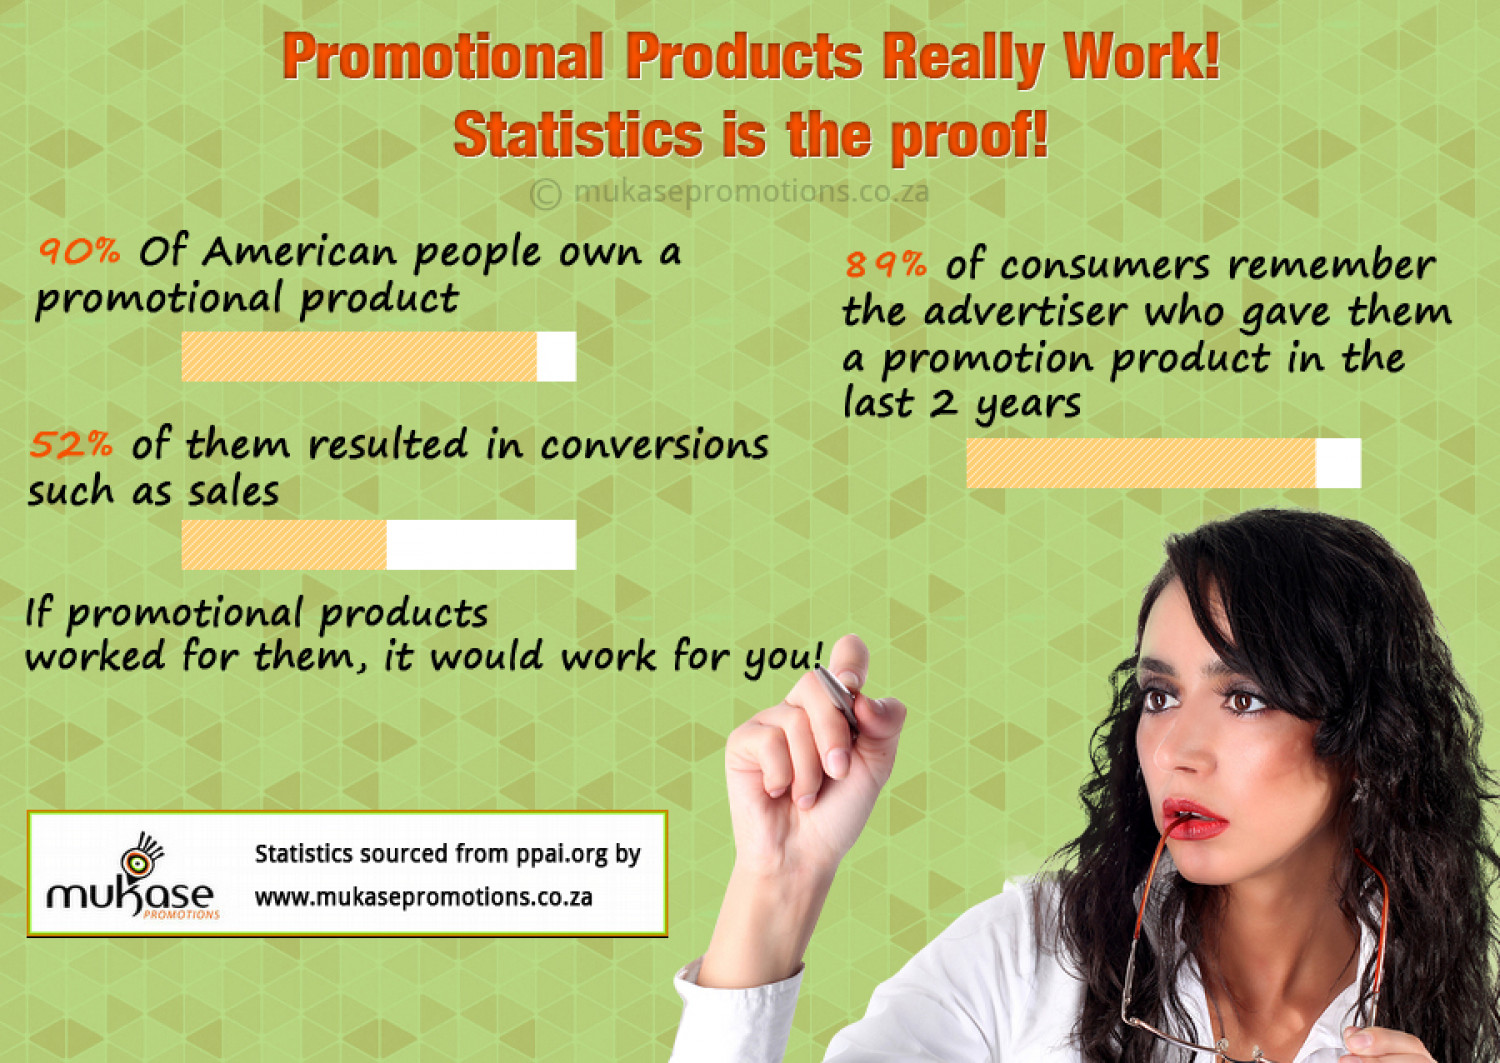 Promotional Products Really Work! Statistics is the proof! Infographic